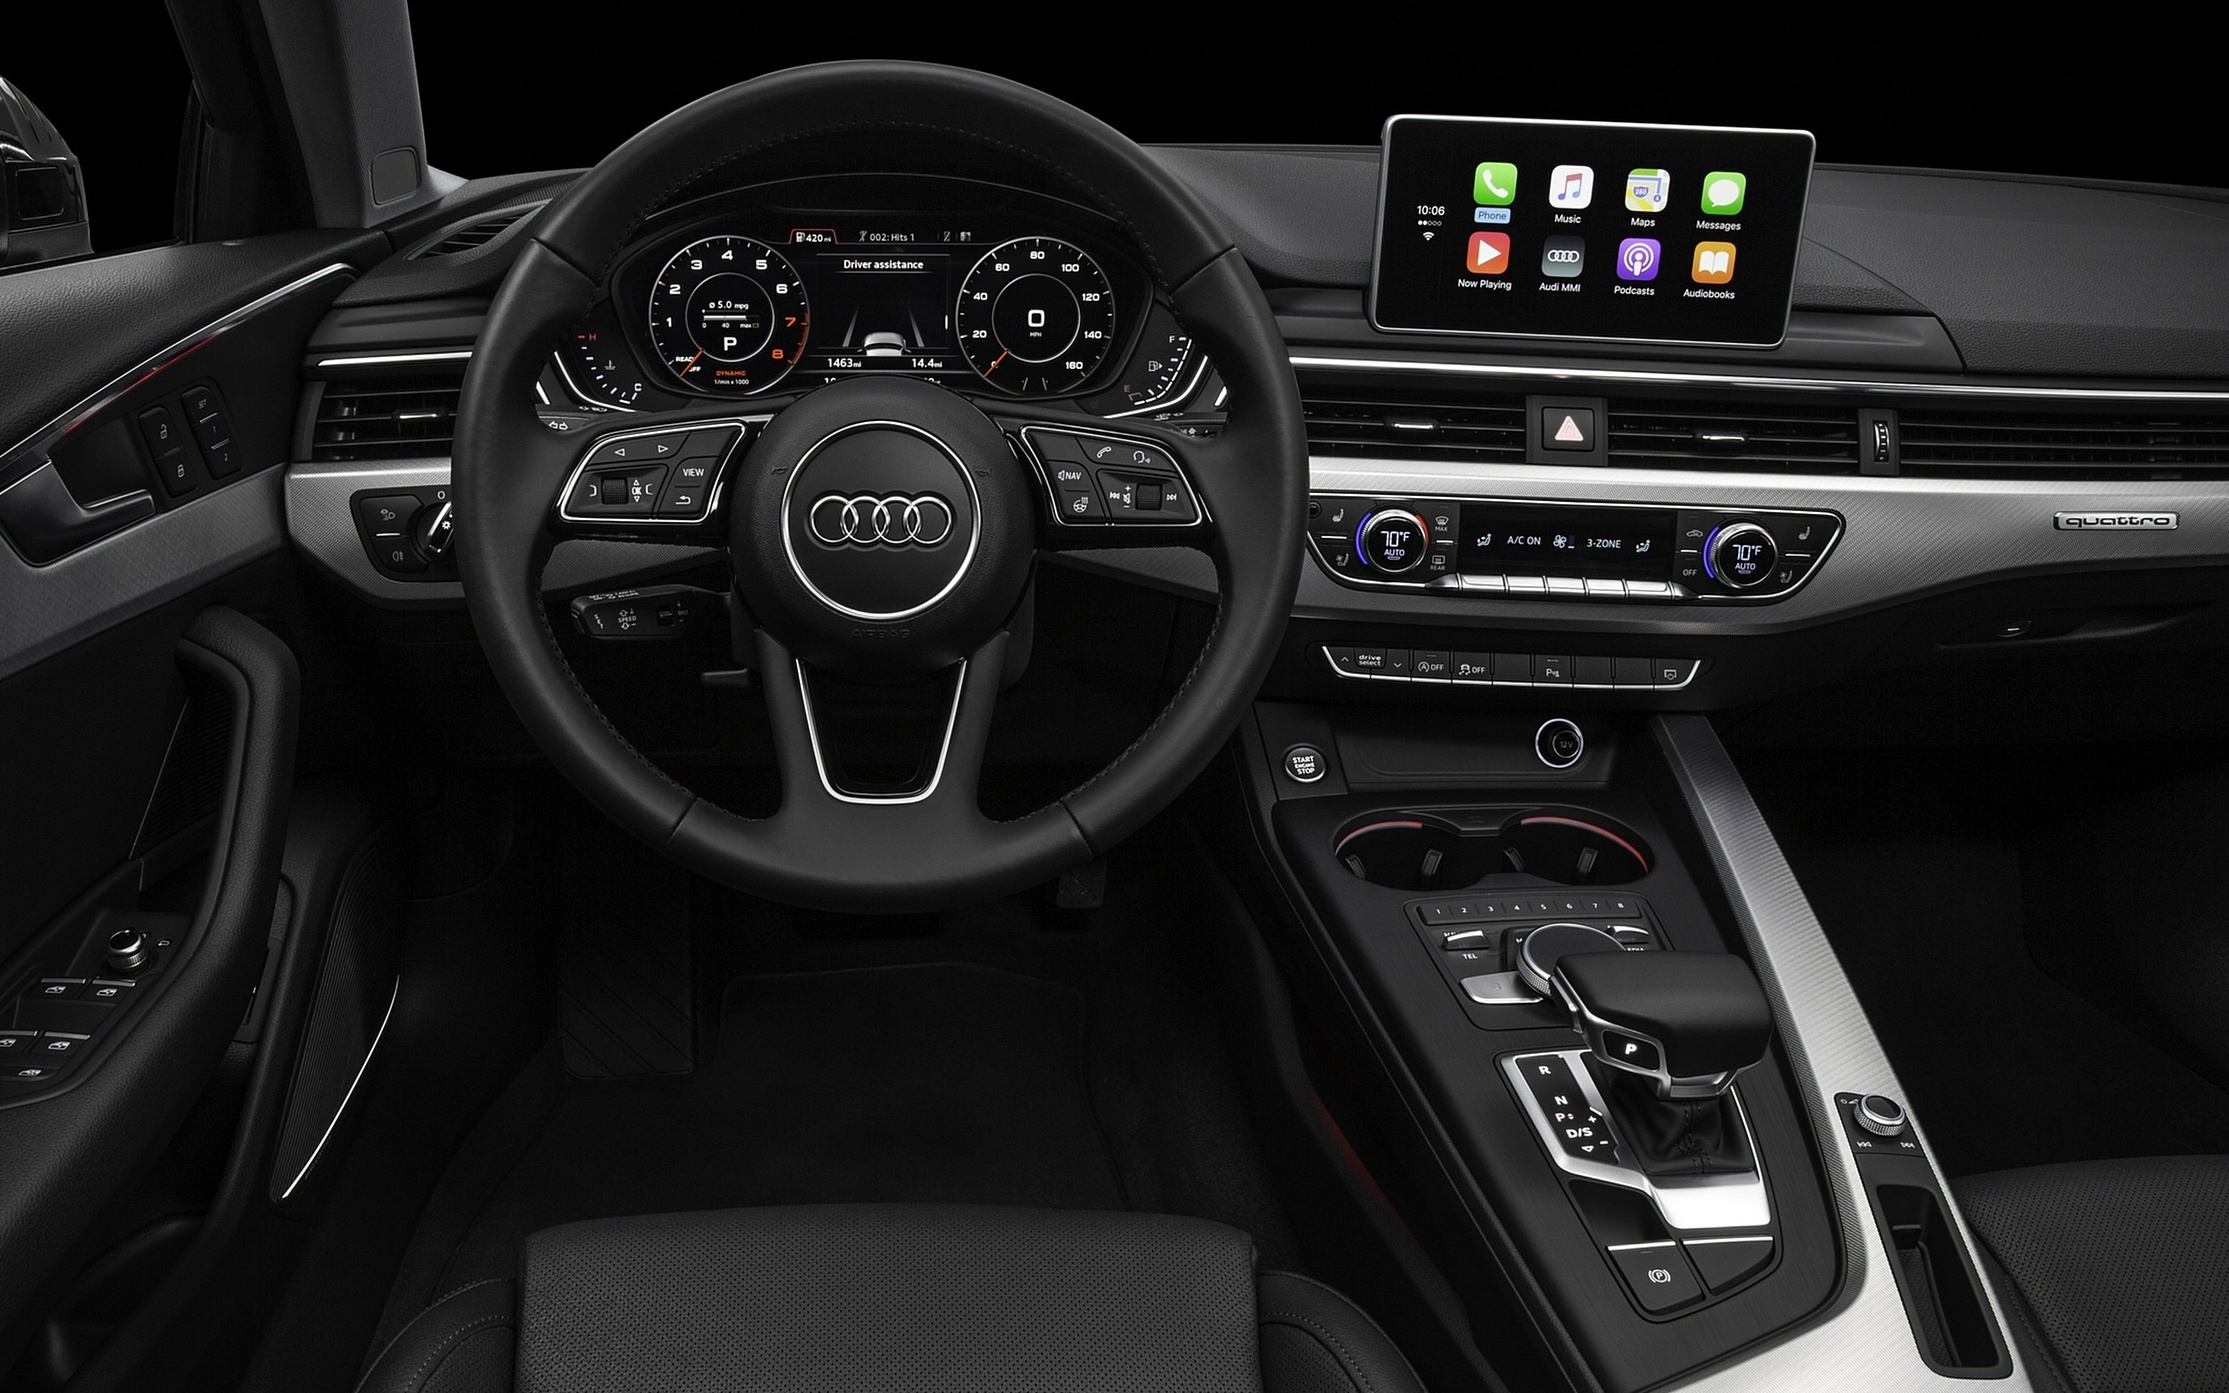 What Are The Interior Features Design Of 2017 Audi A4